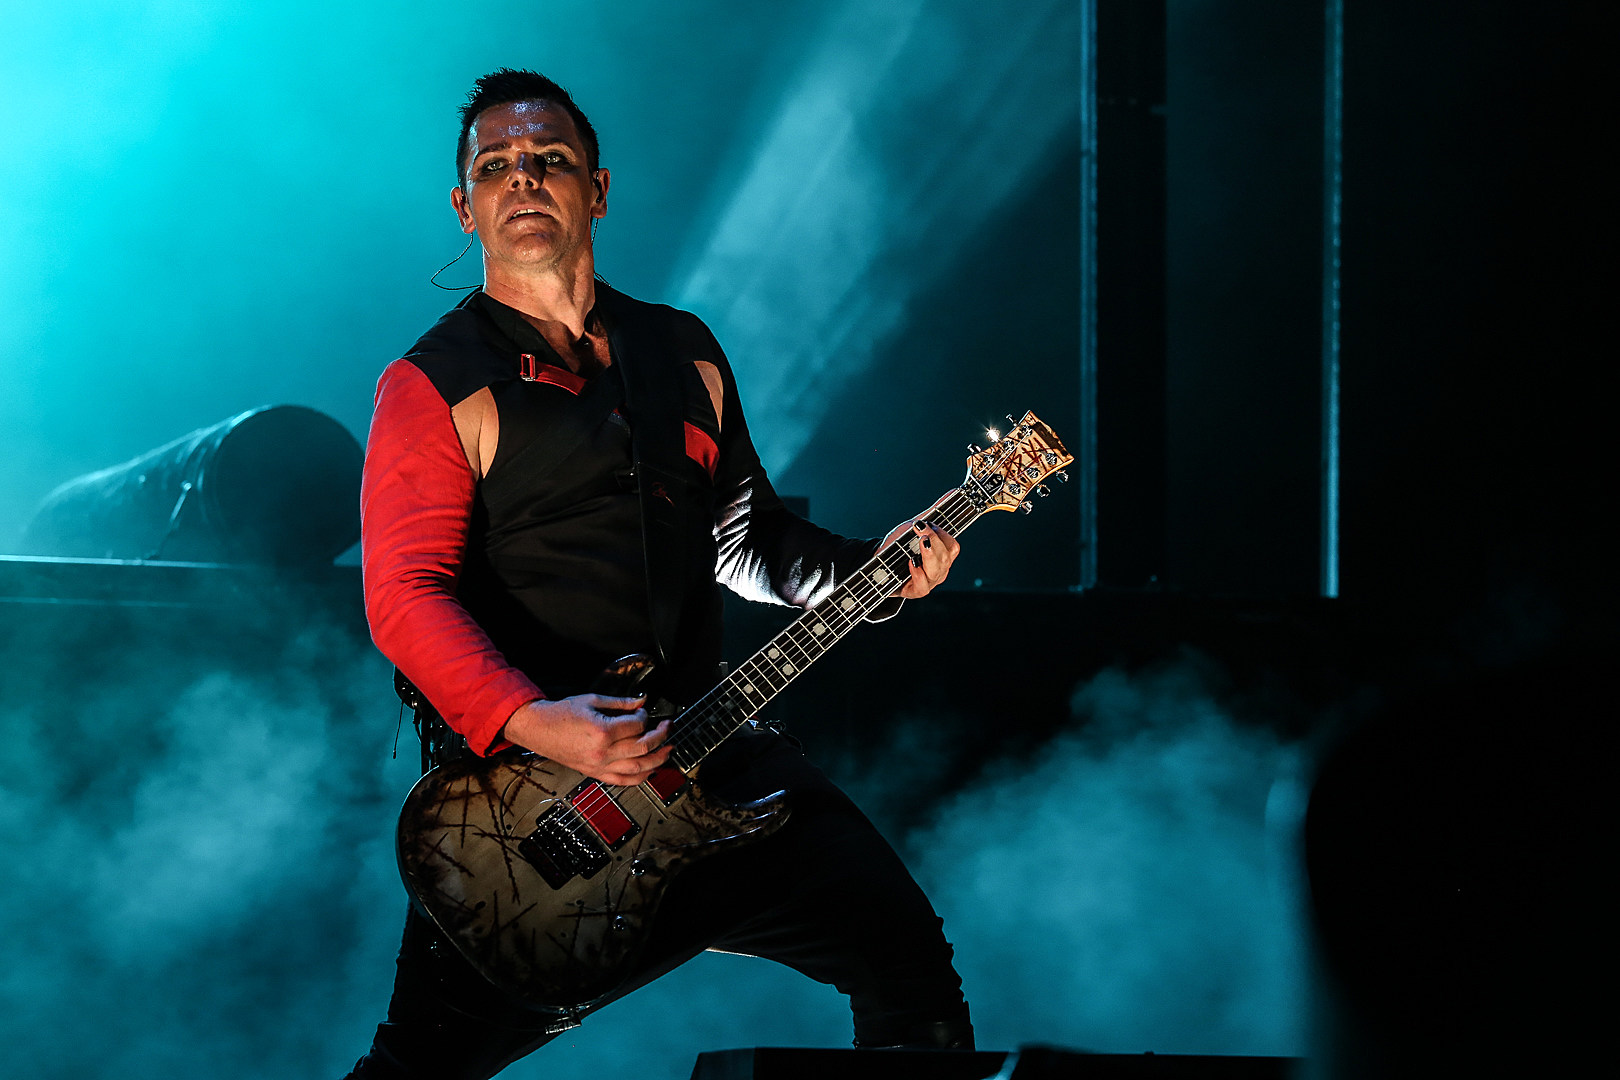 Rammstein's Richard Kruspe: New Album Mixed in December, Three Year Tour Cycle Starts in 2019